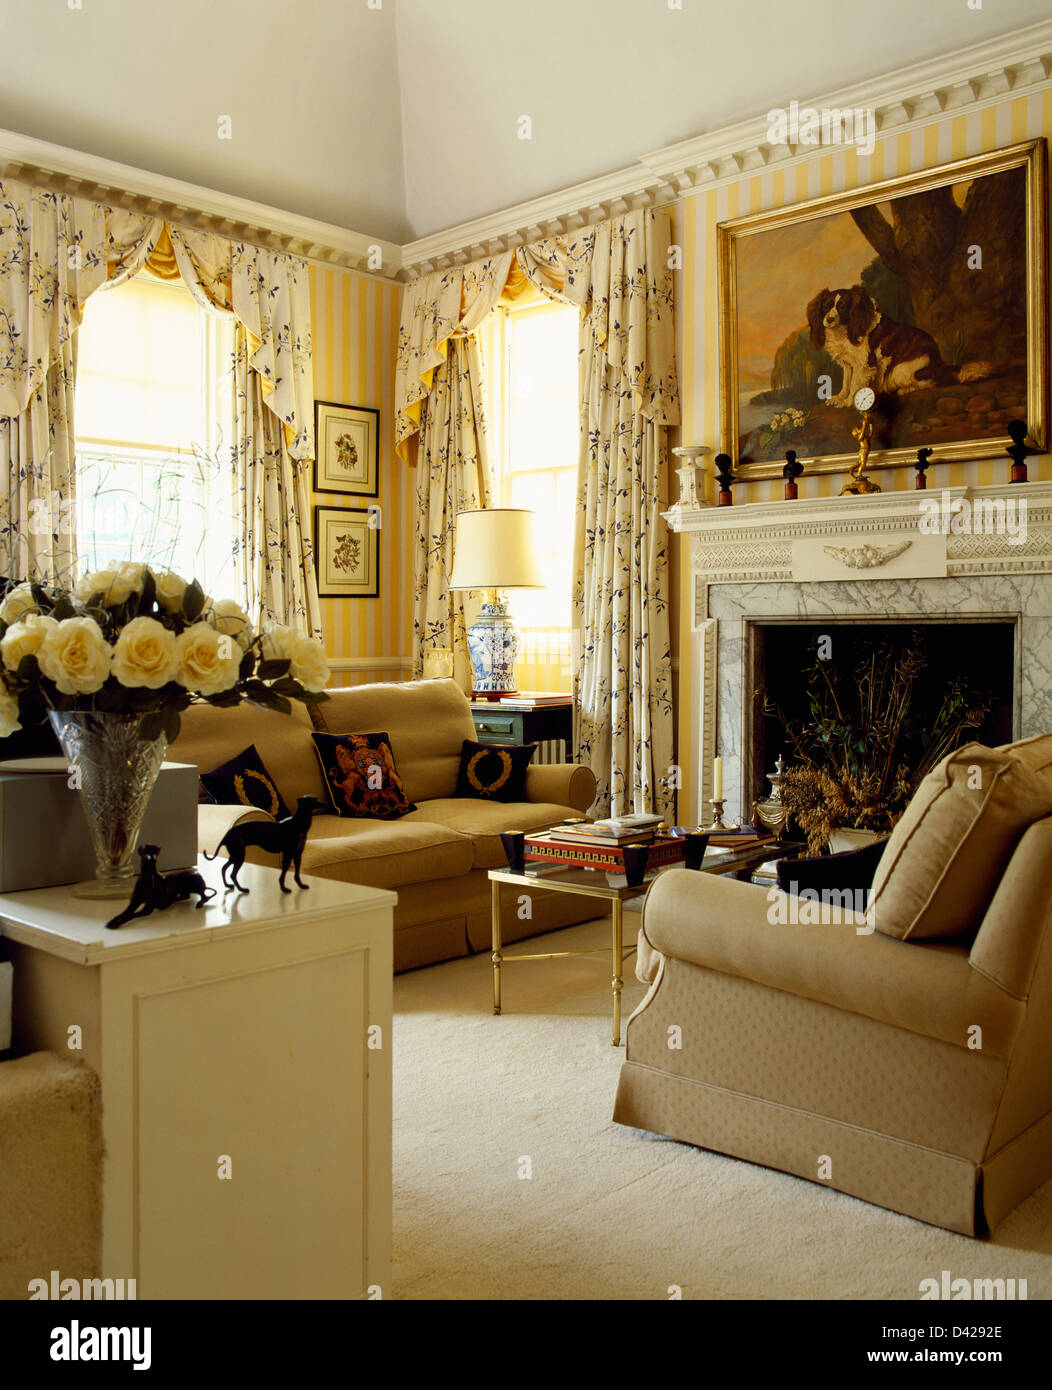 modern curtains for living room uk small design ideas philippines beige sofas and cream carpet in yellow country ...